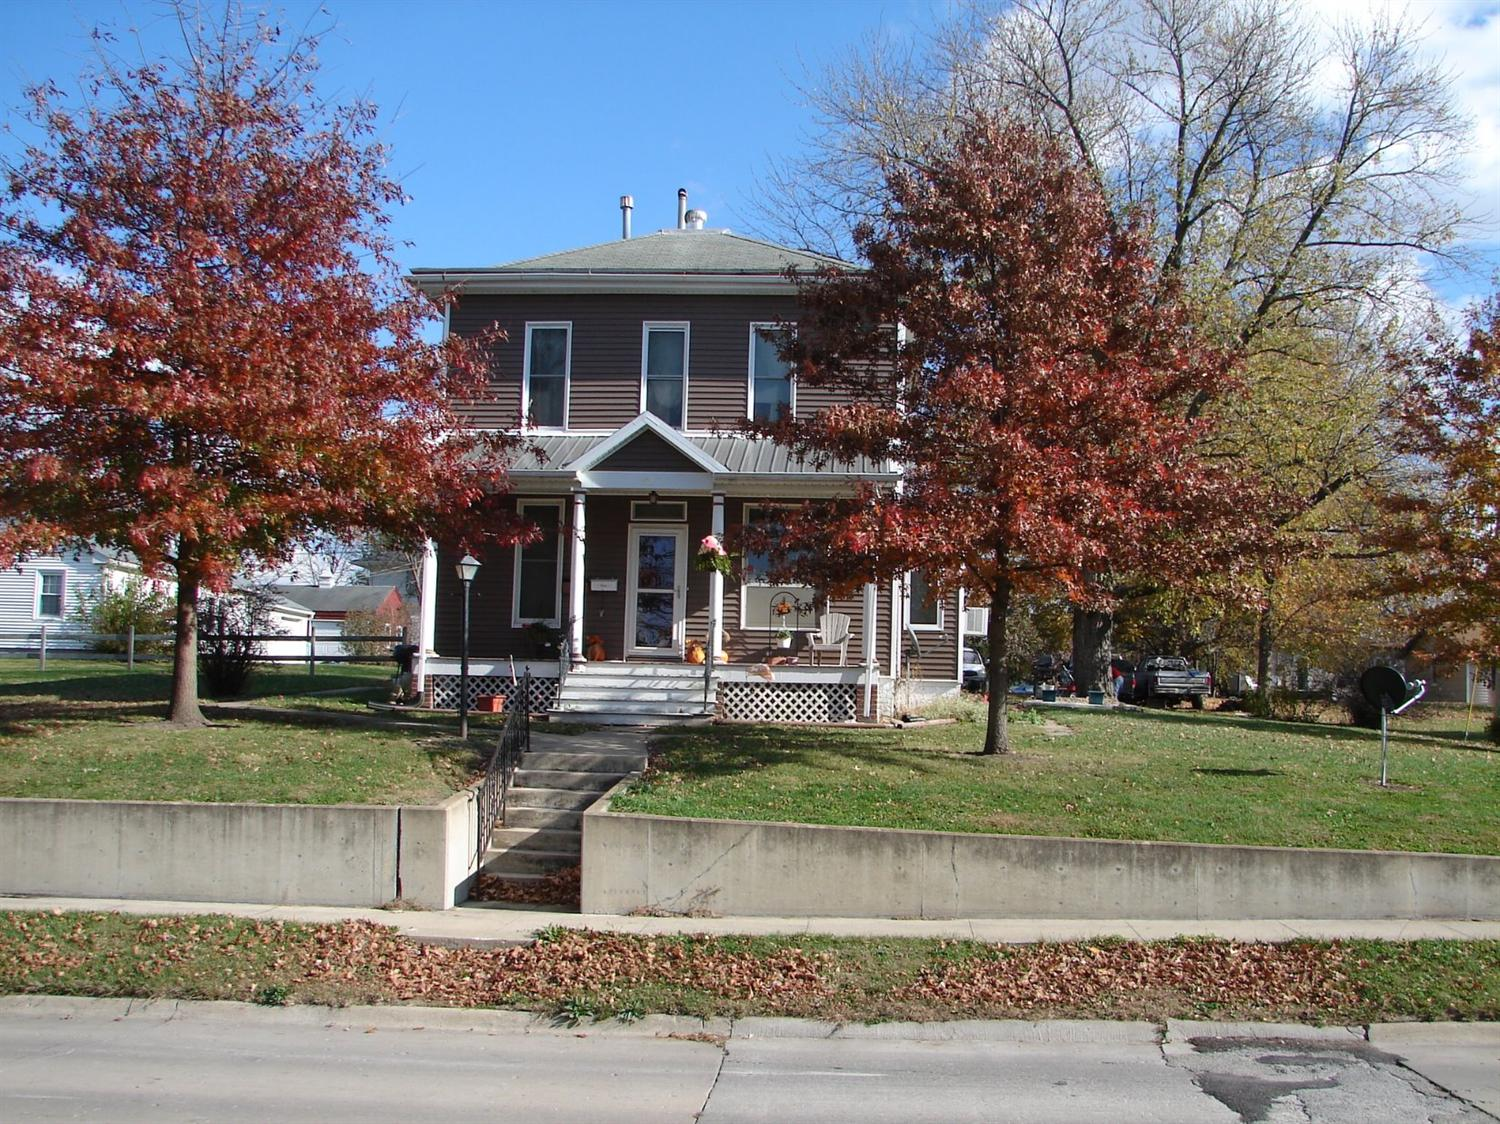 302 S White St, Mount Pleasant, IA 52641